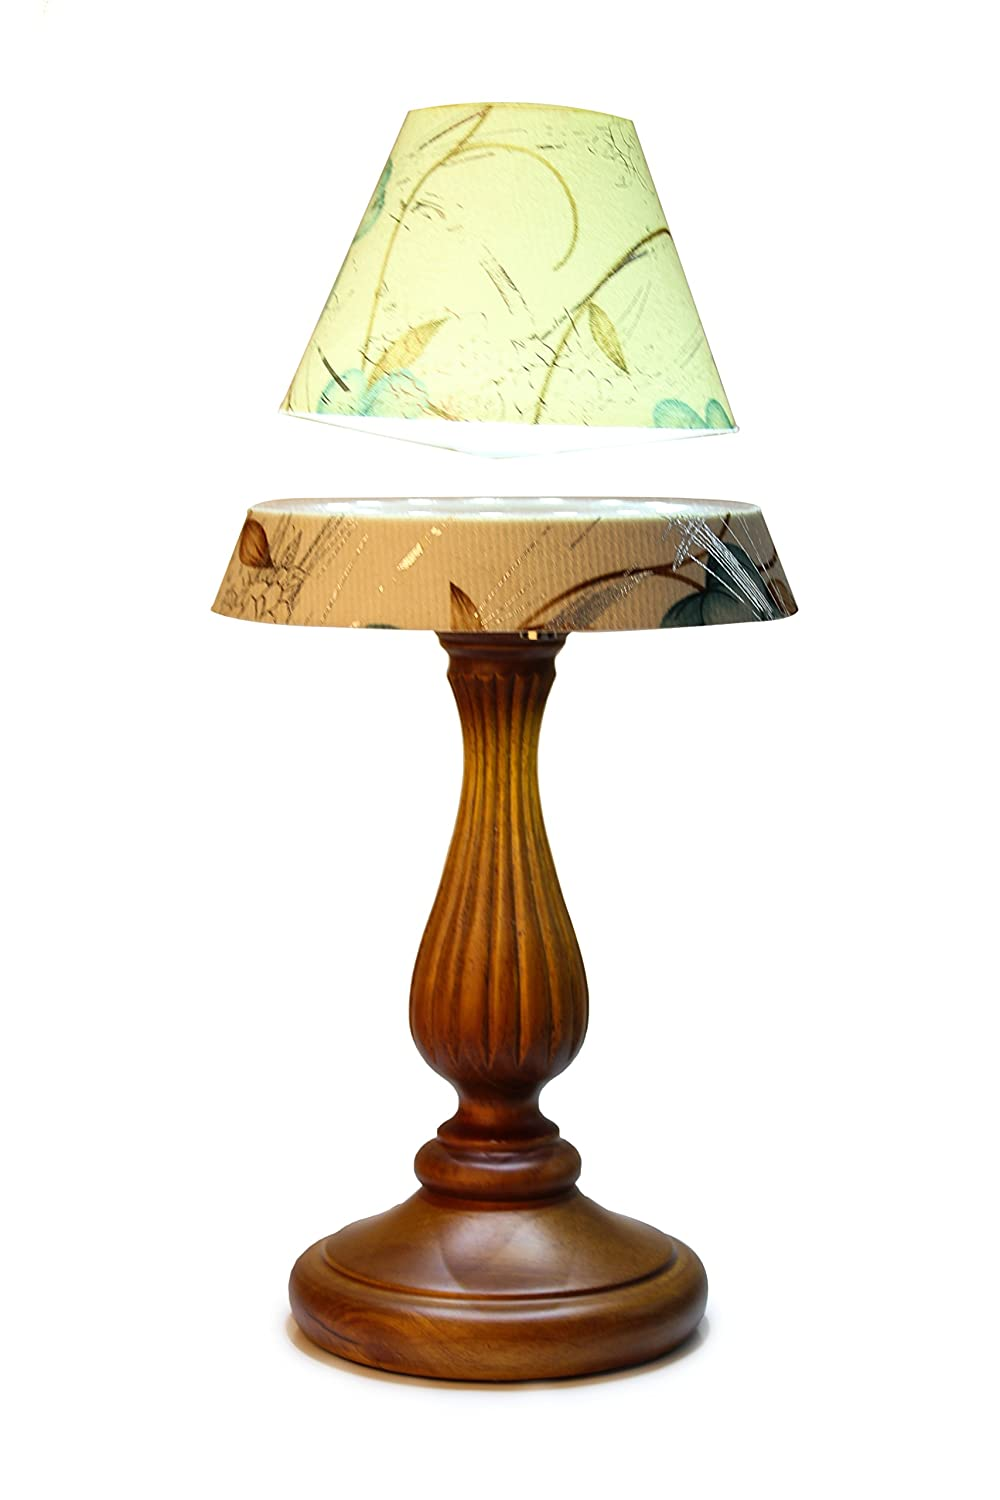 Levitating lamp shade best lamp 2017 levitron levitating lamps give the gift of levitation geotapseo Image collections